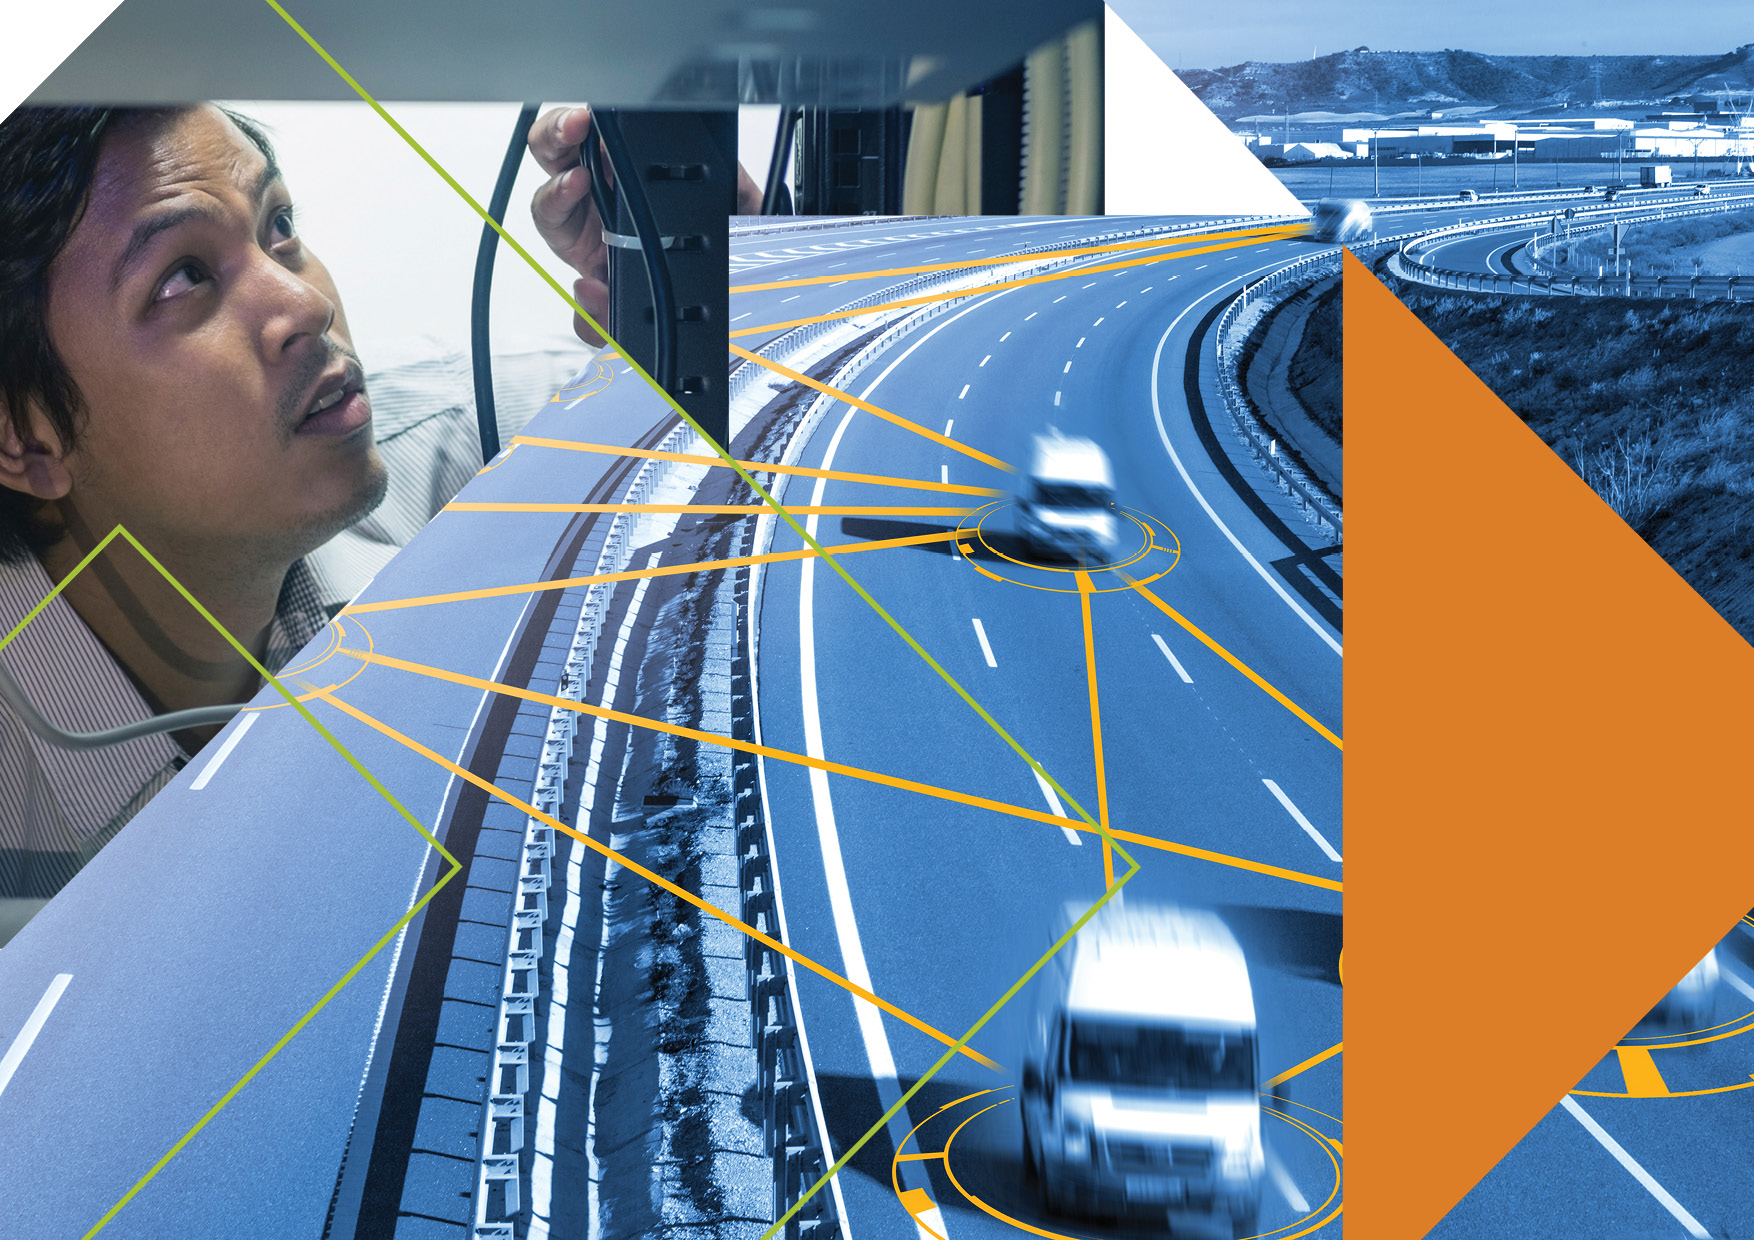 Connected Vehicle Technology Contract Goes to Costain